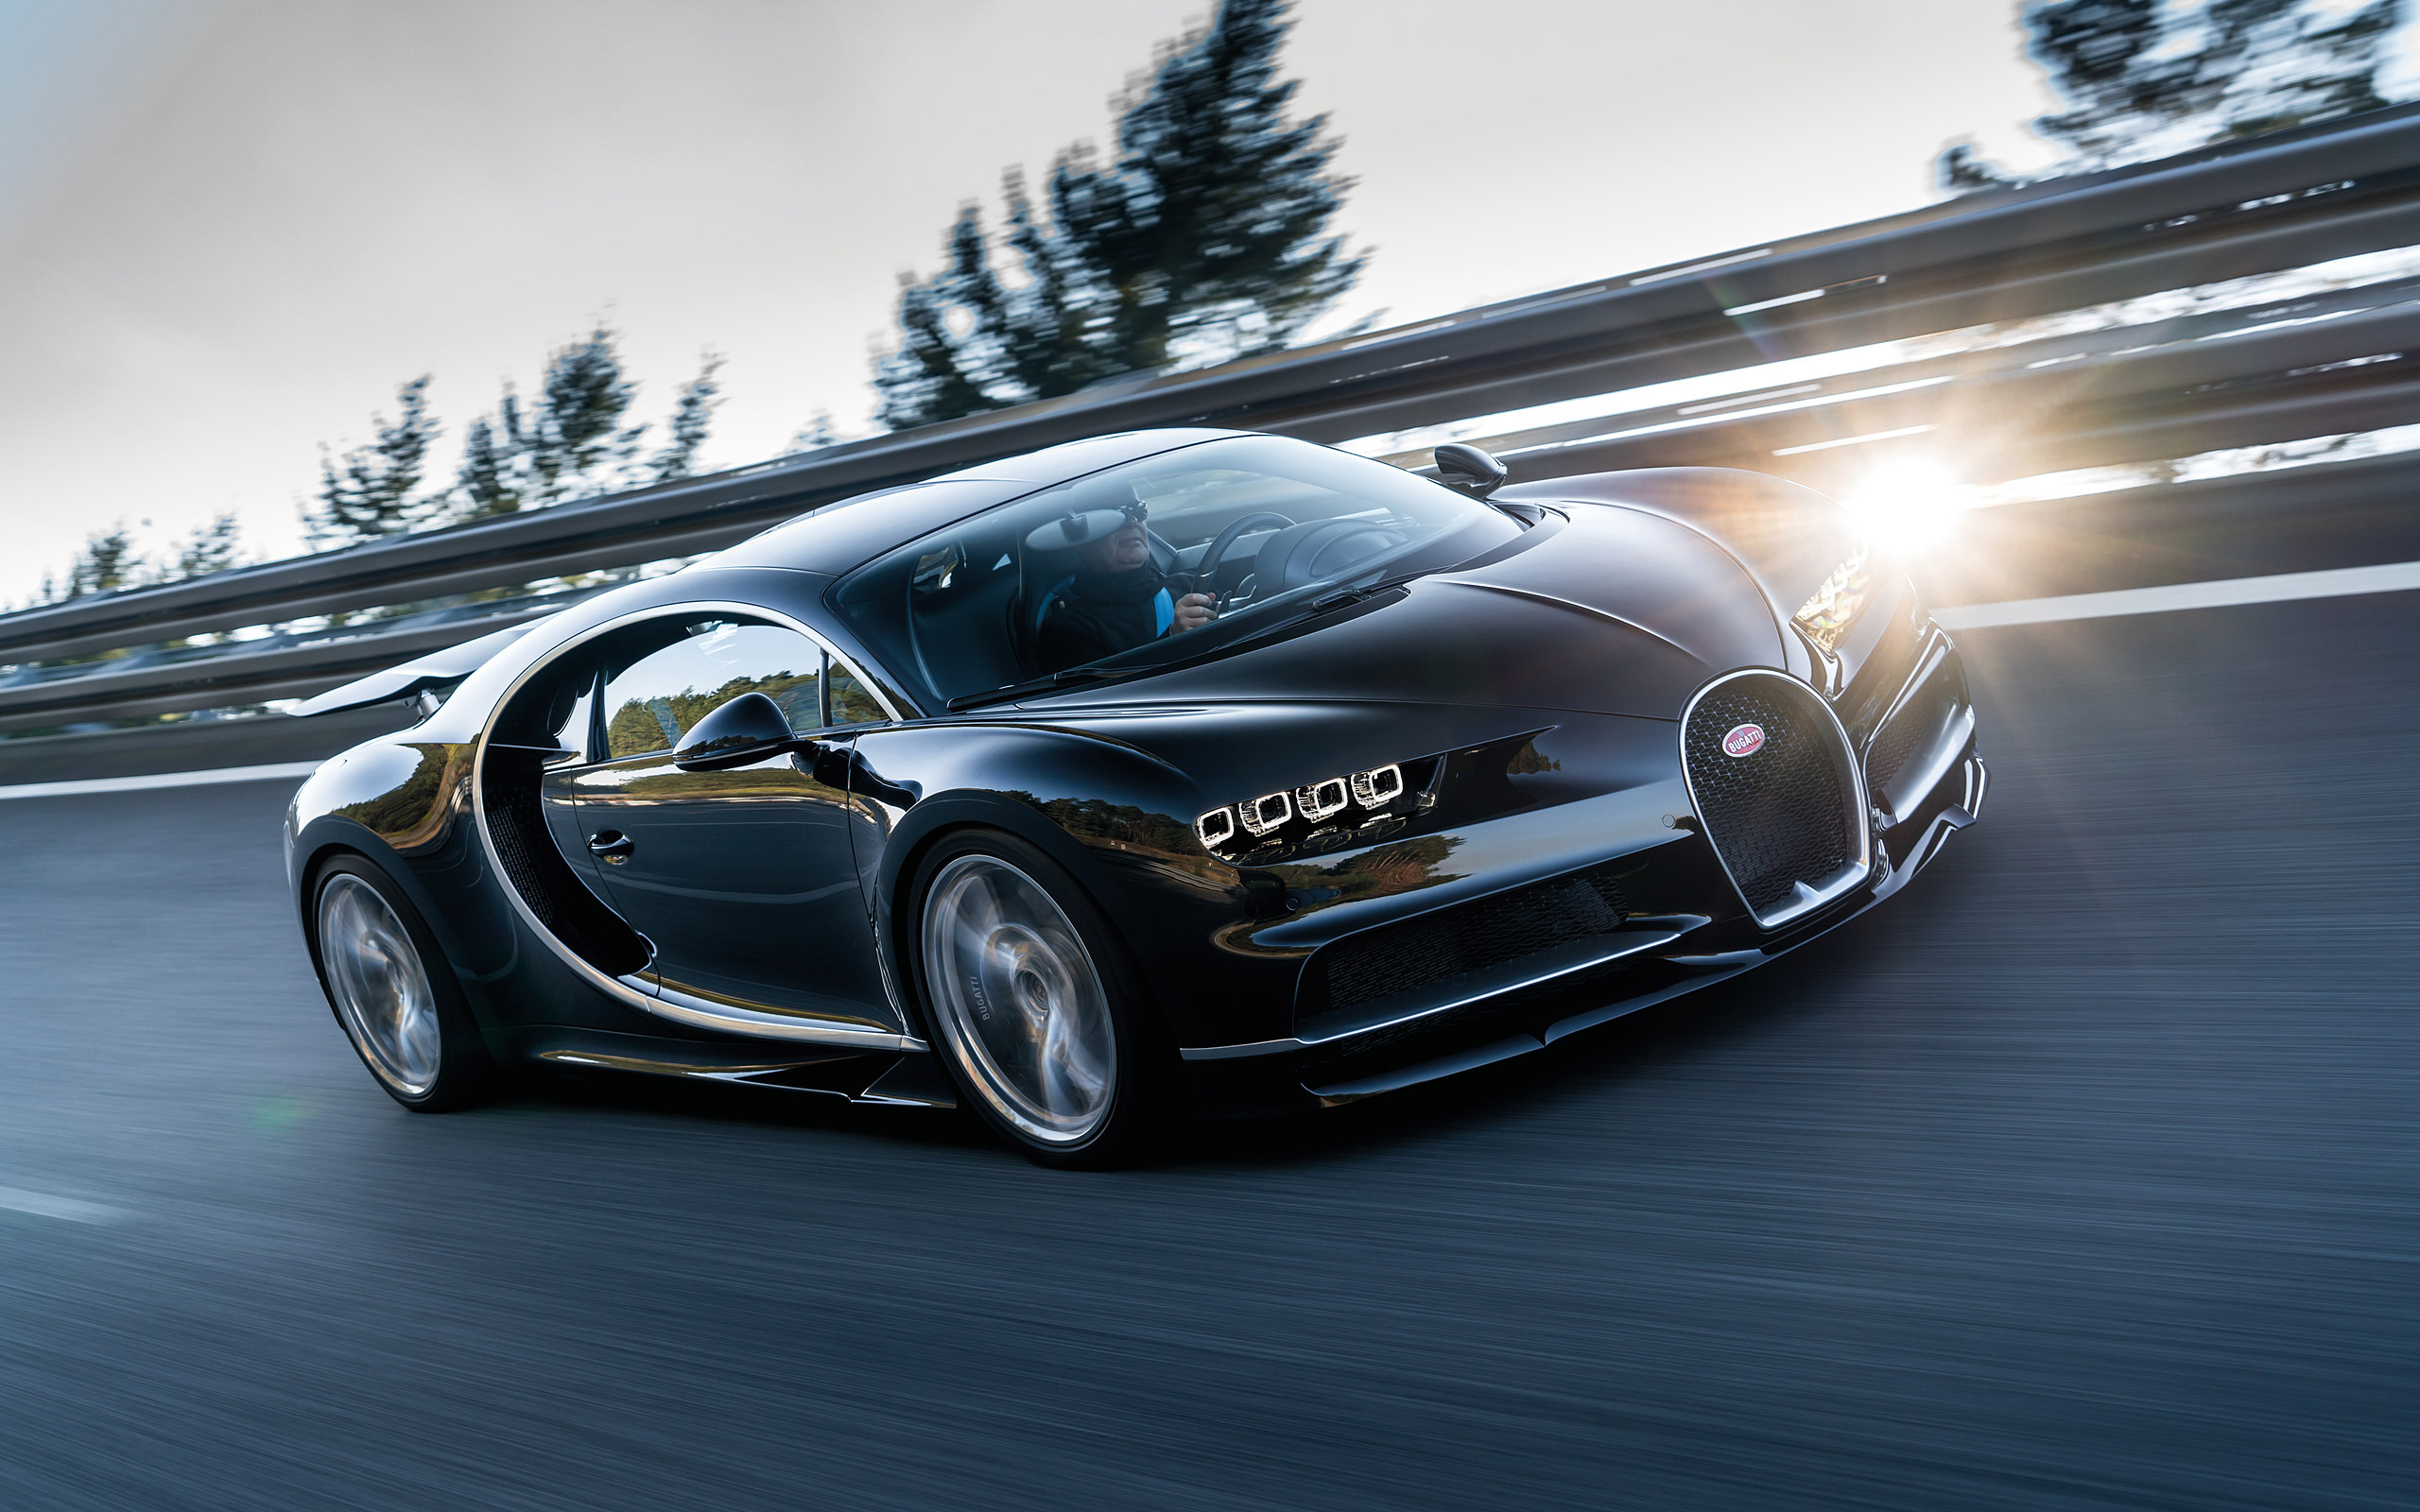 bugatti car wallpapers | free download hd new latest motors images